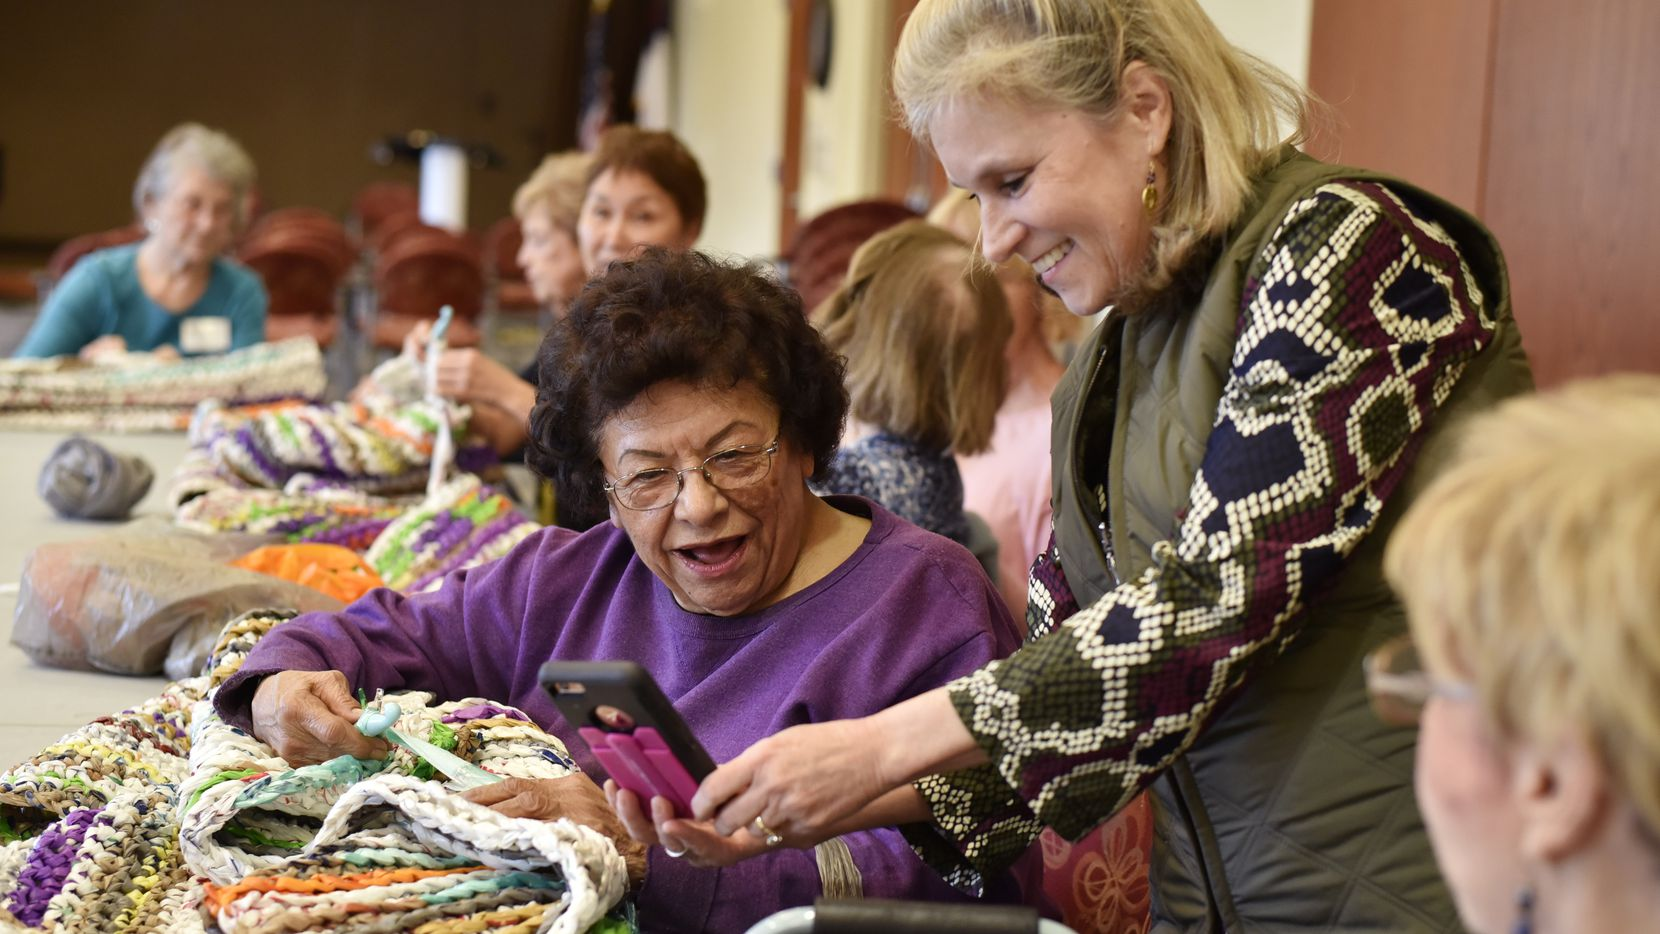 Volunteers Annie Palacios (left) and Brianna Brown look at a photo on Brown's cellphone as the women take a brief break from crocheting plastic bags into floor mats.